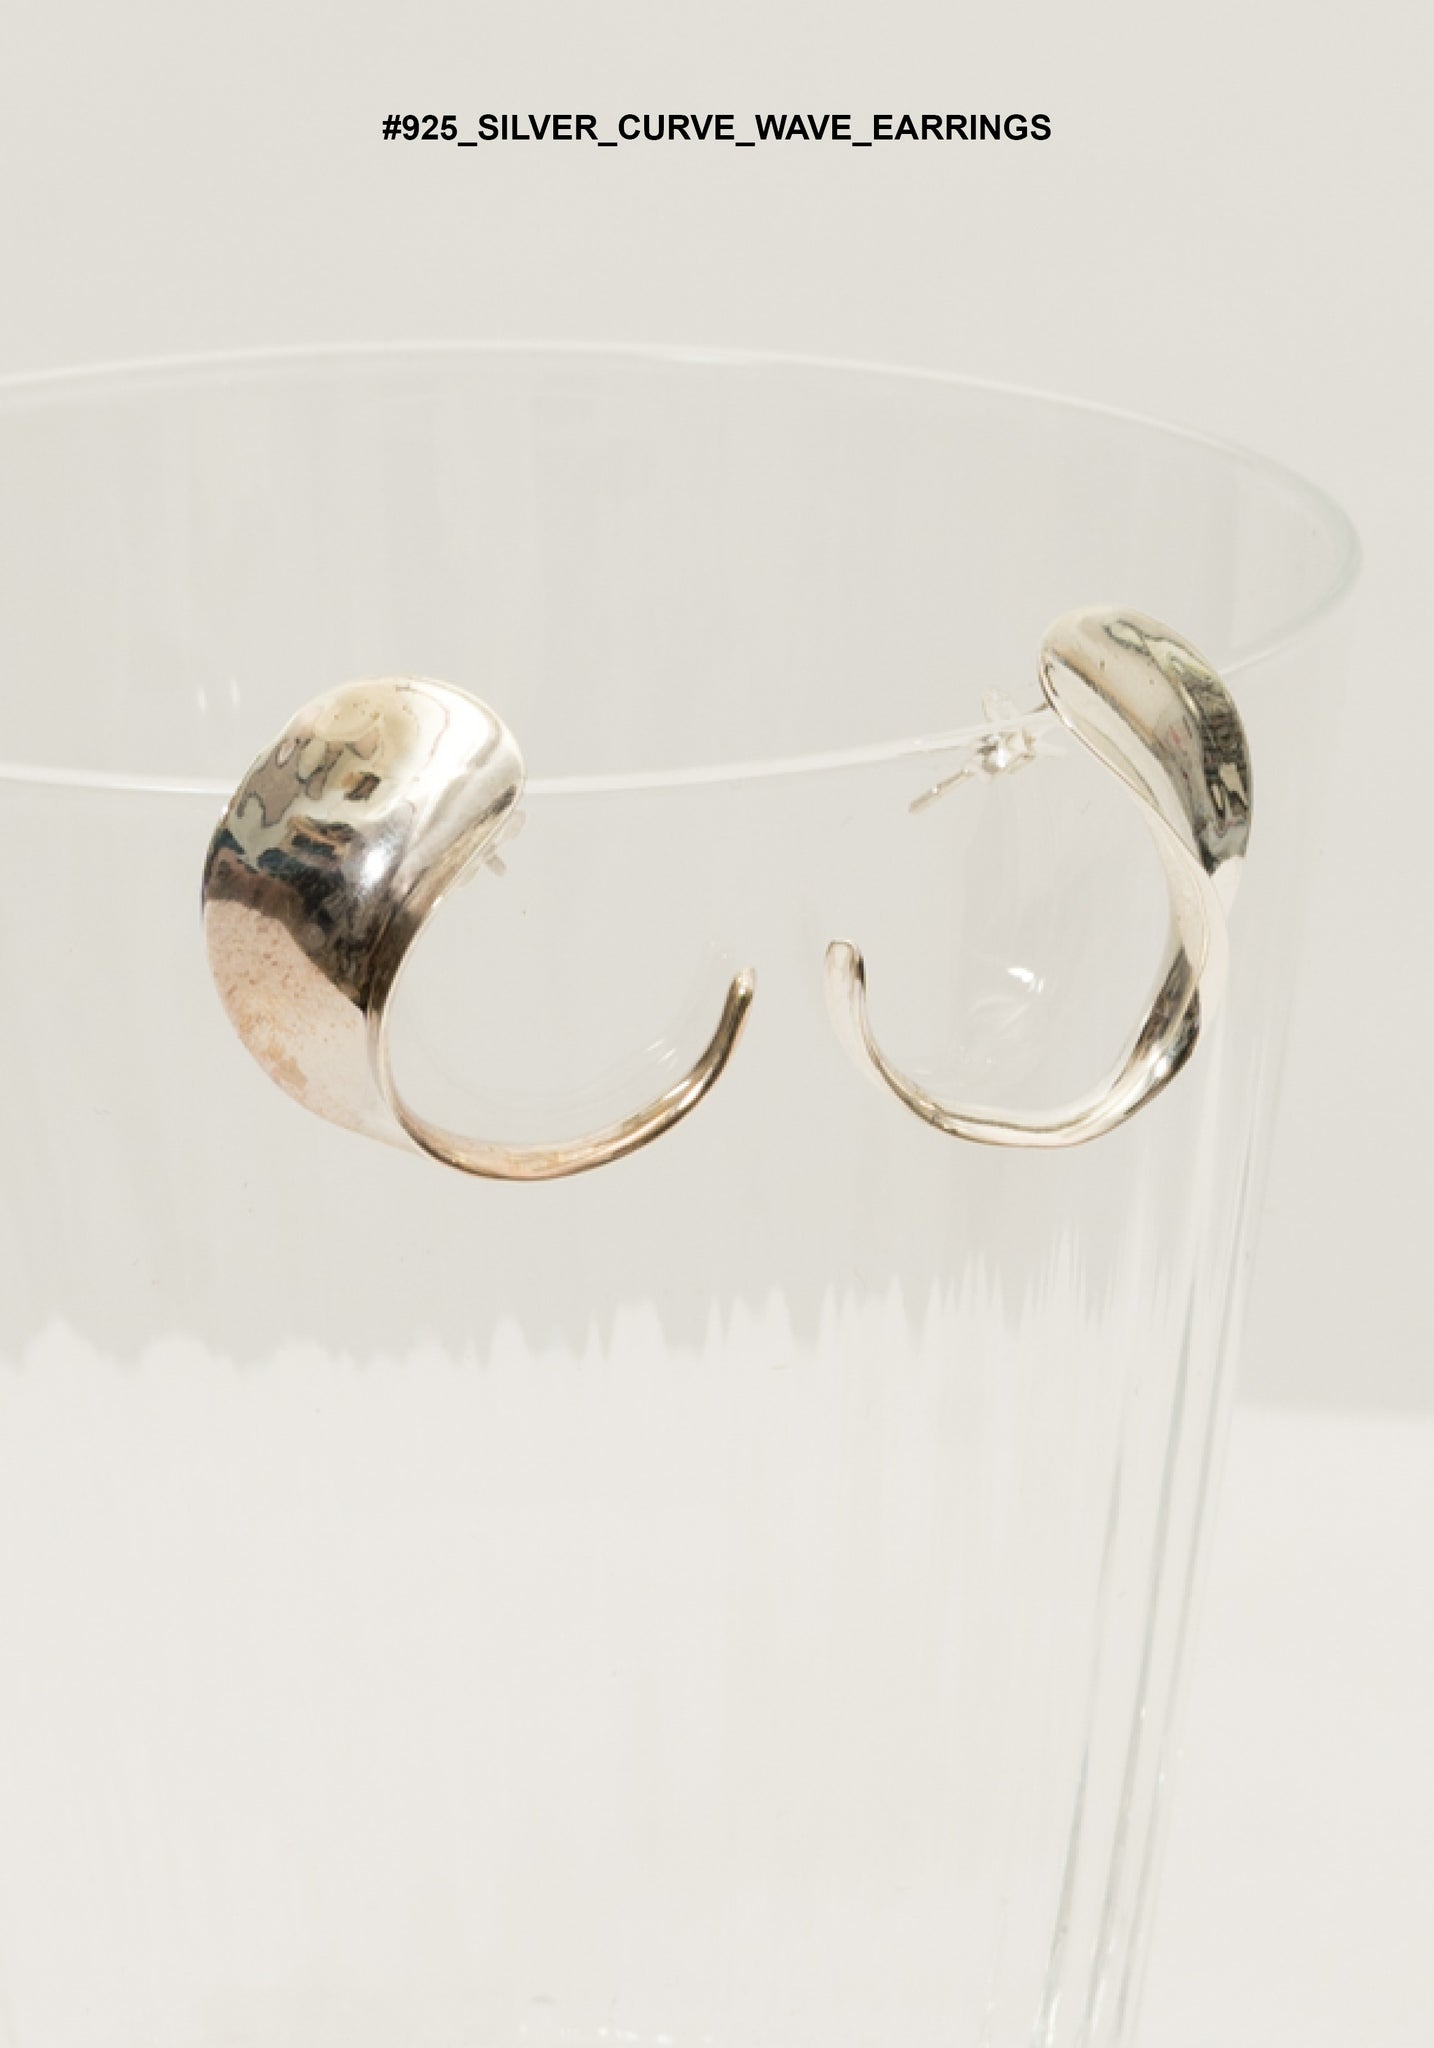 925 Silver Curve Wave Earrings - whoami